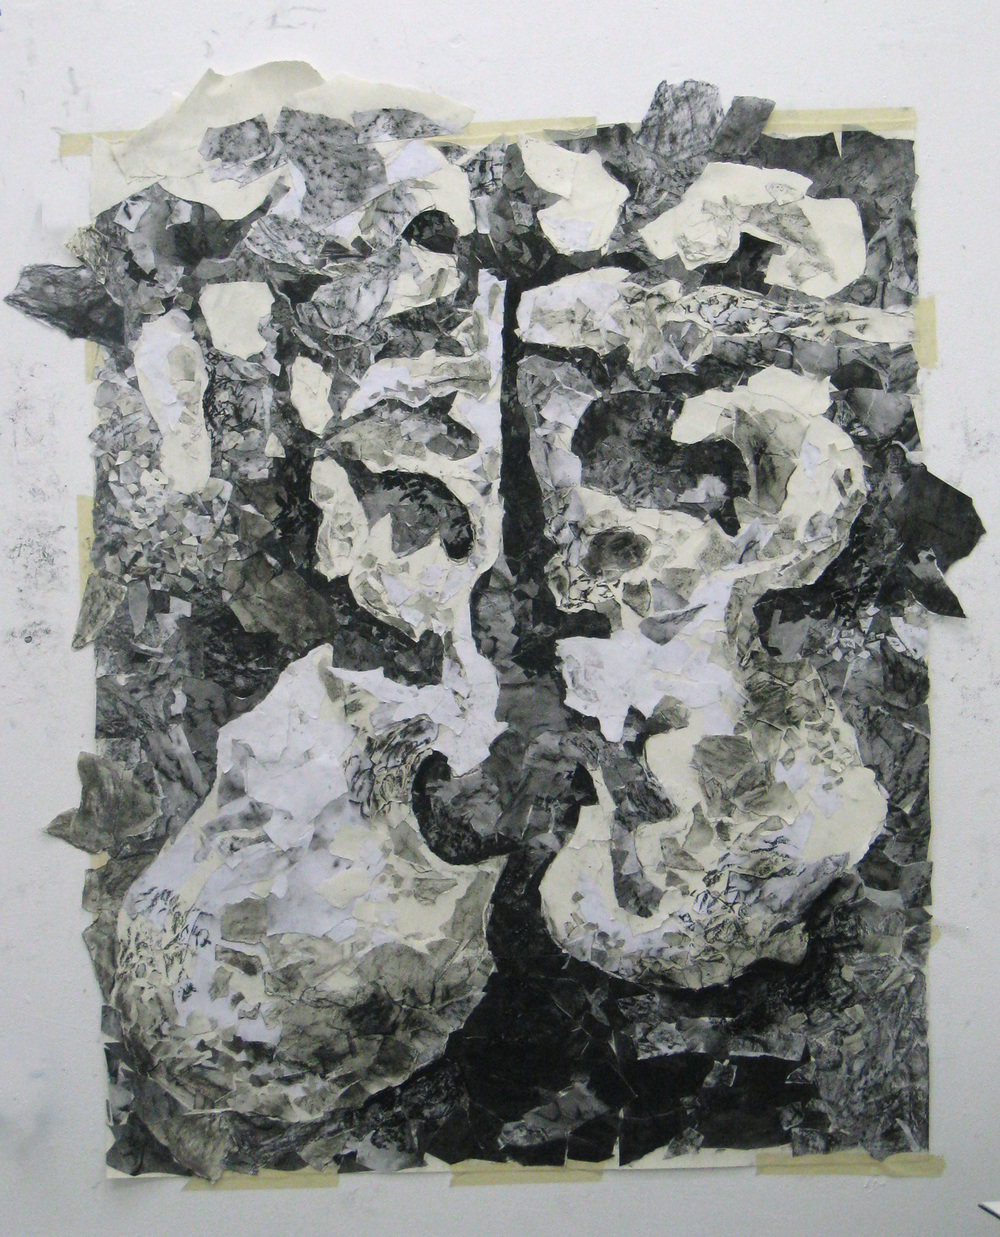 Burren Floor 2010 30x40  paper and charcoal collage